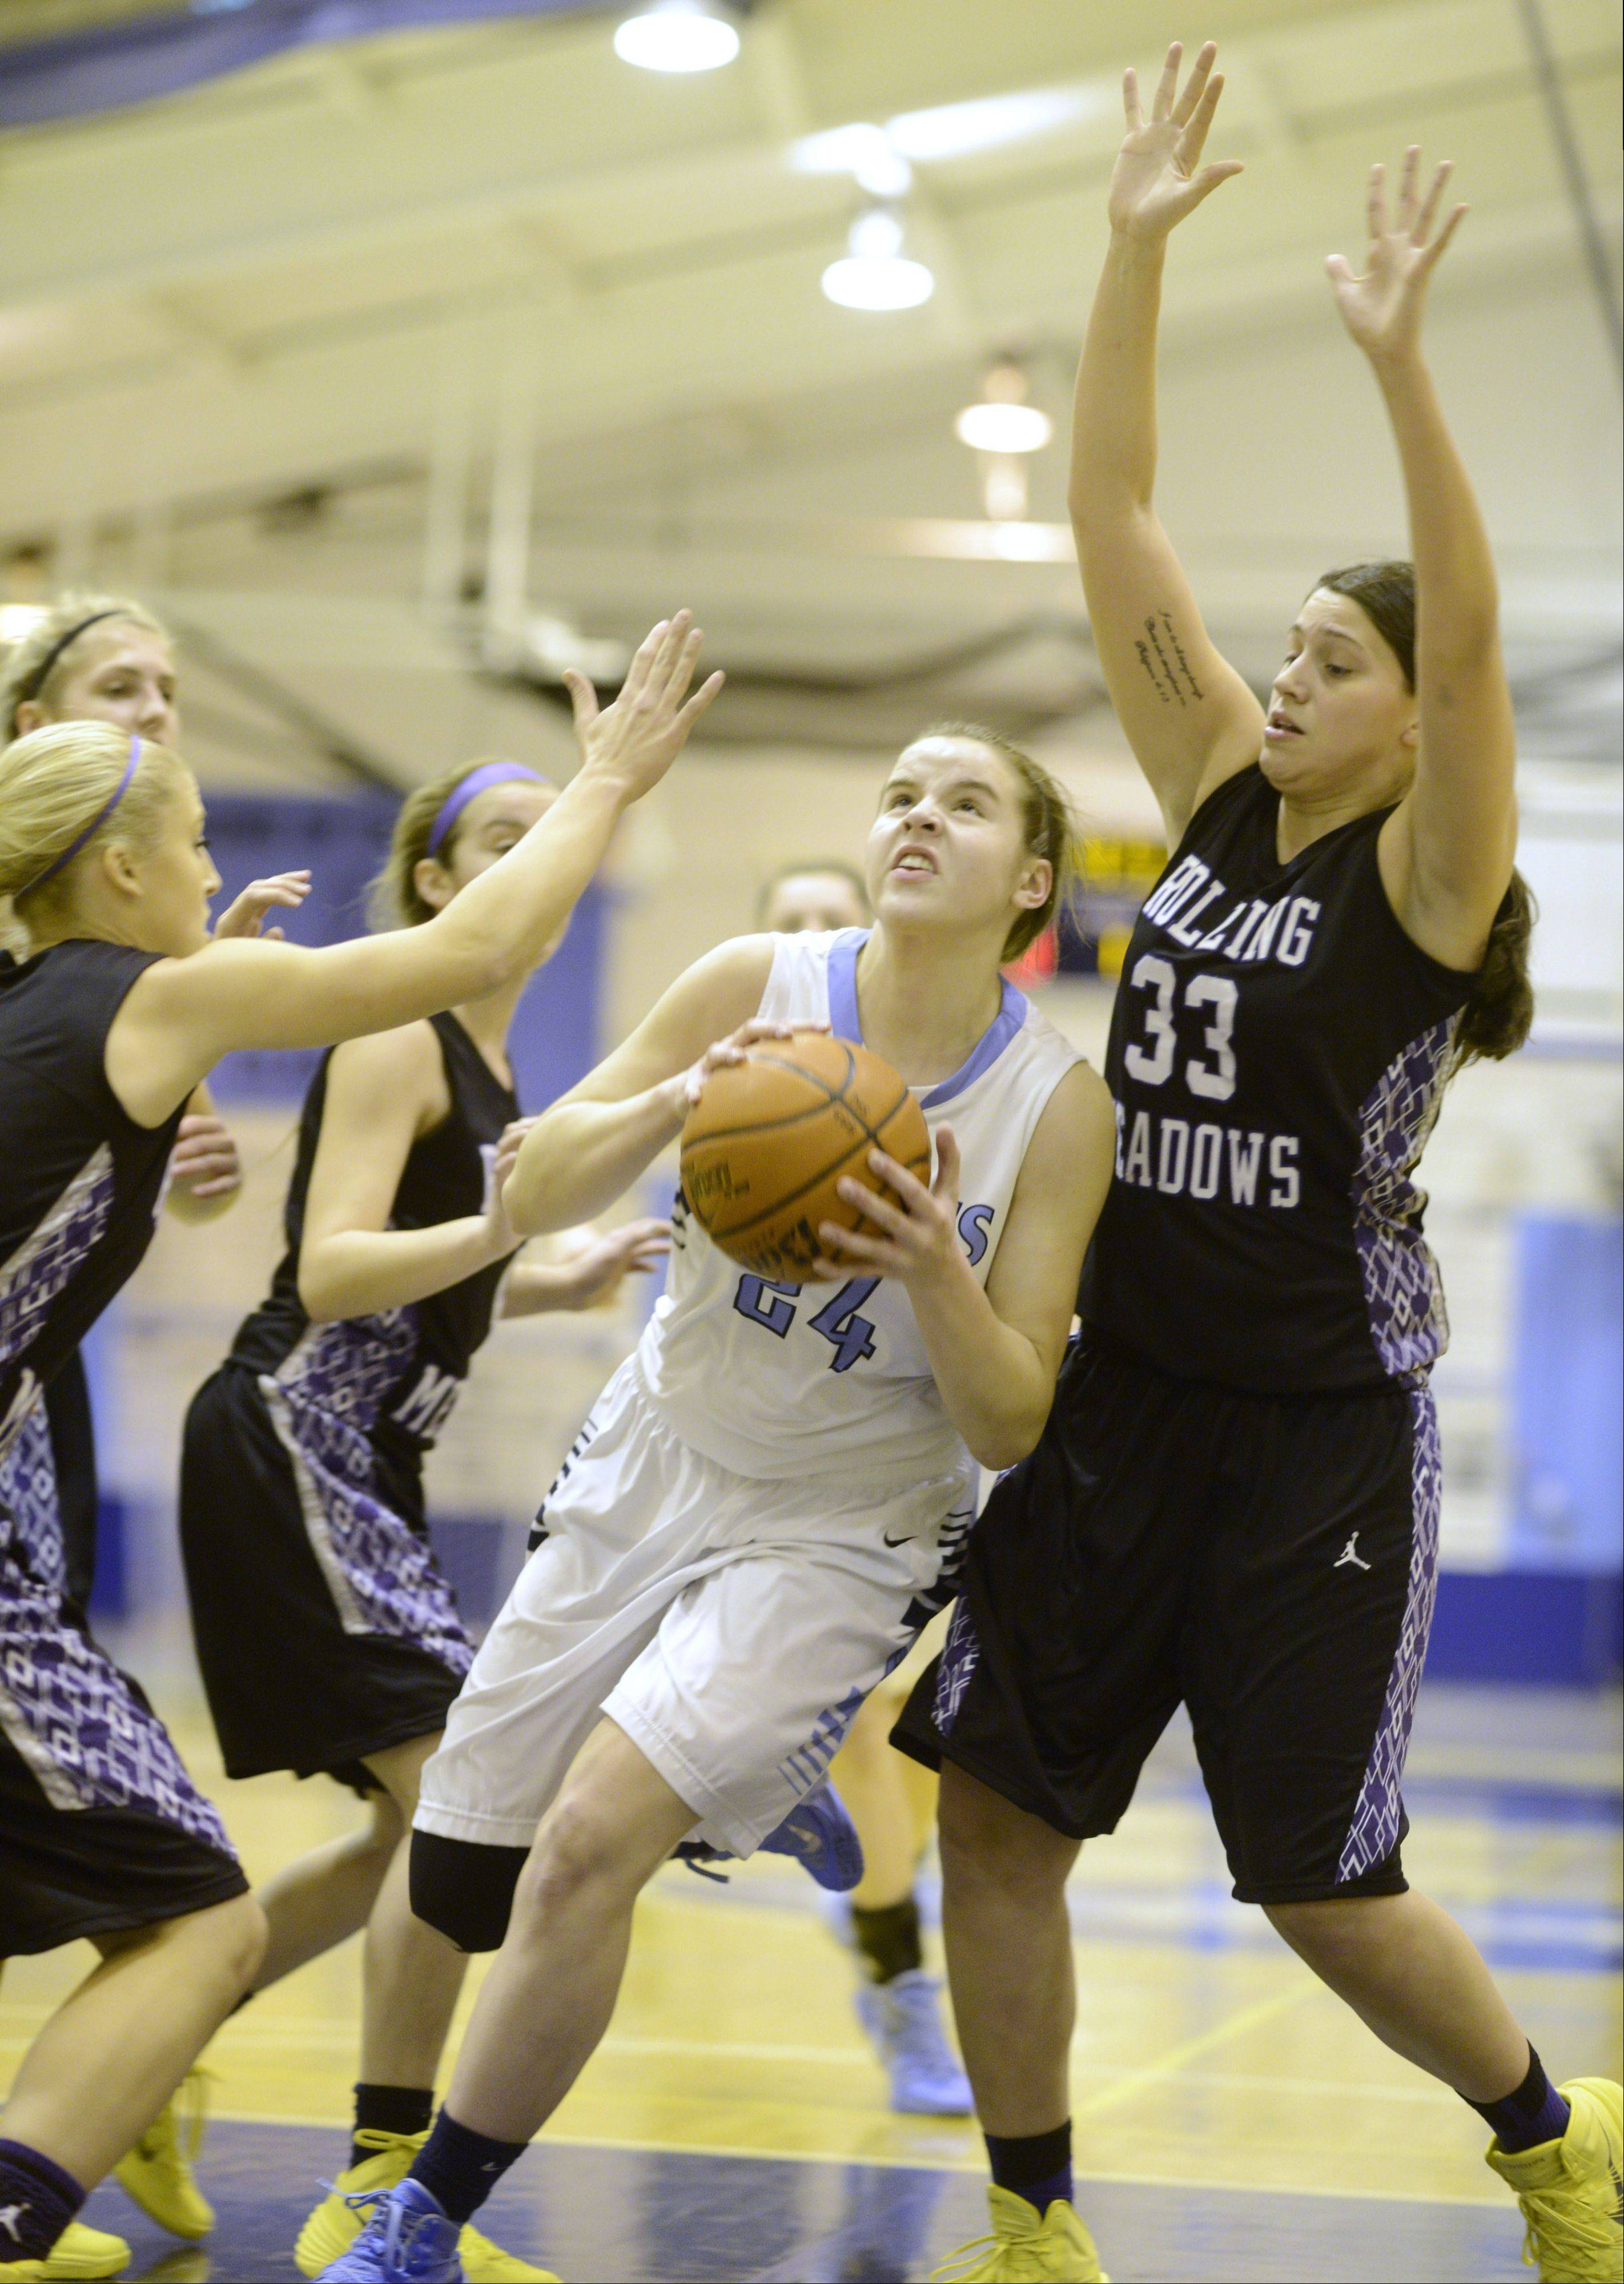 Photos from the Rolling Meadows vs. Prospect girls basketball game on Saturday, January 11th, in Mount Prospect.